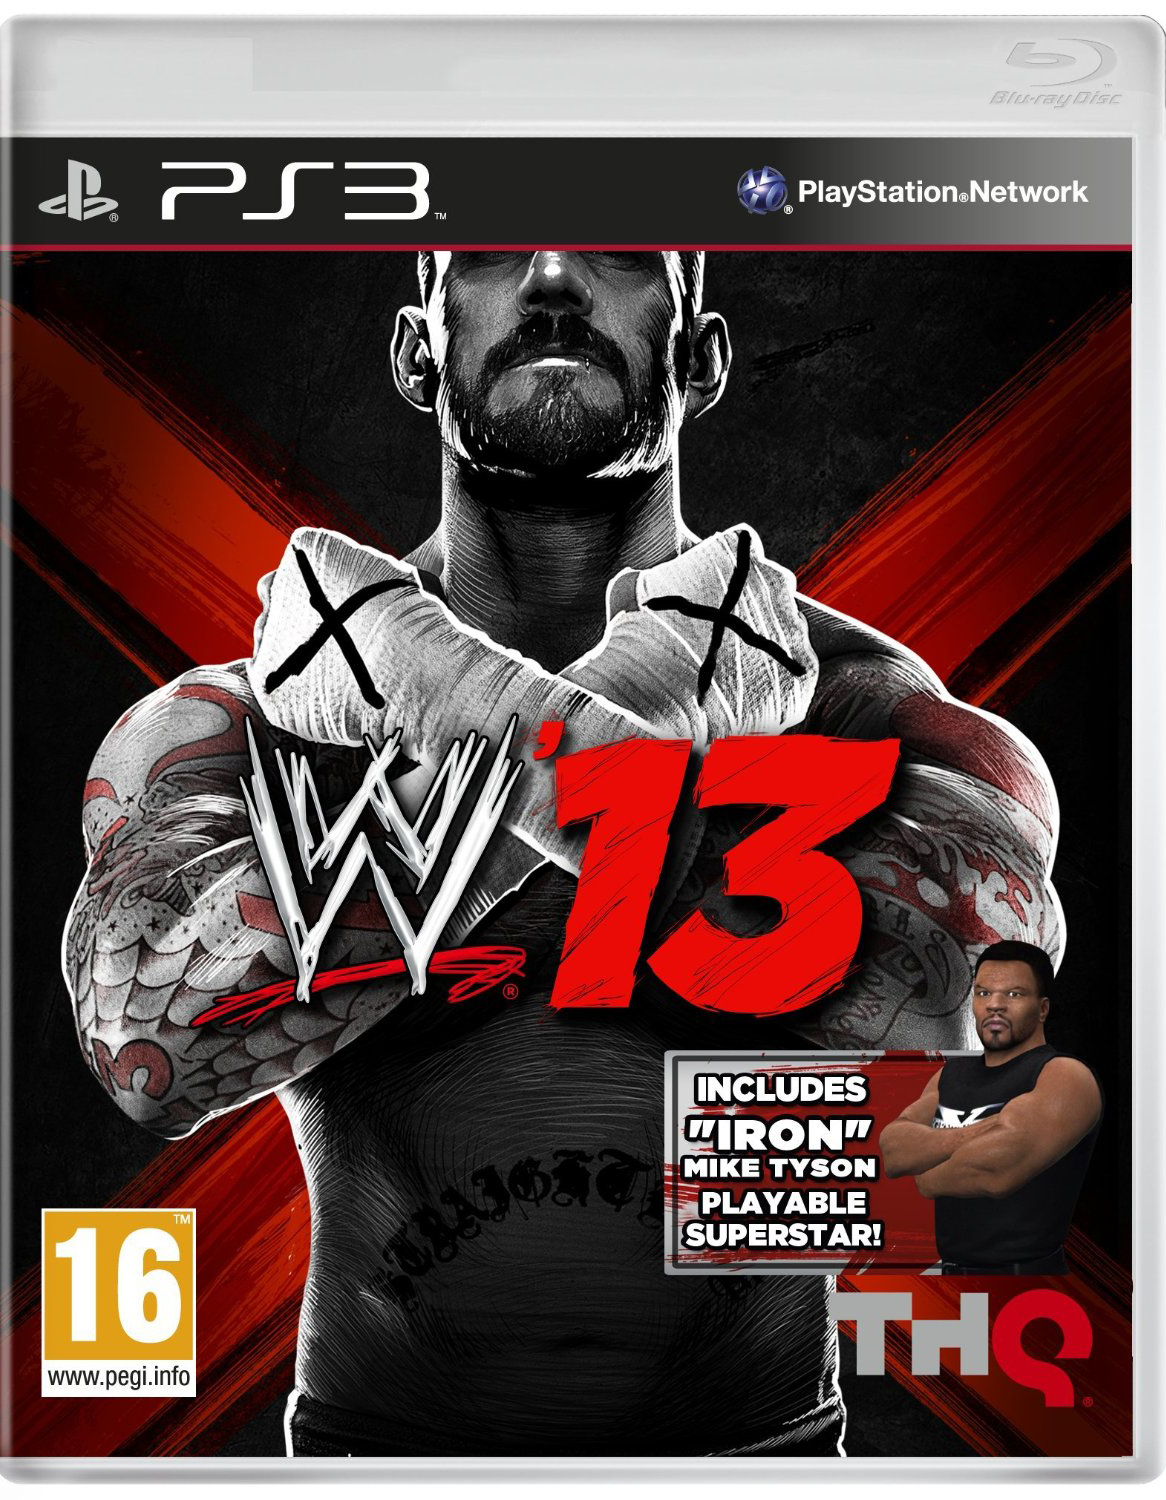 WWE 13: Limited - Mike Tyson Edition